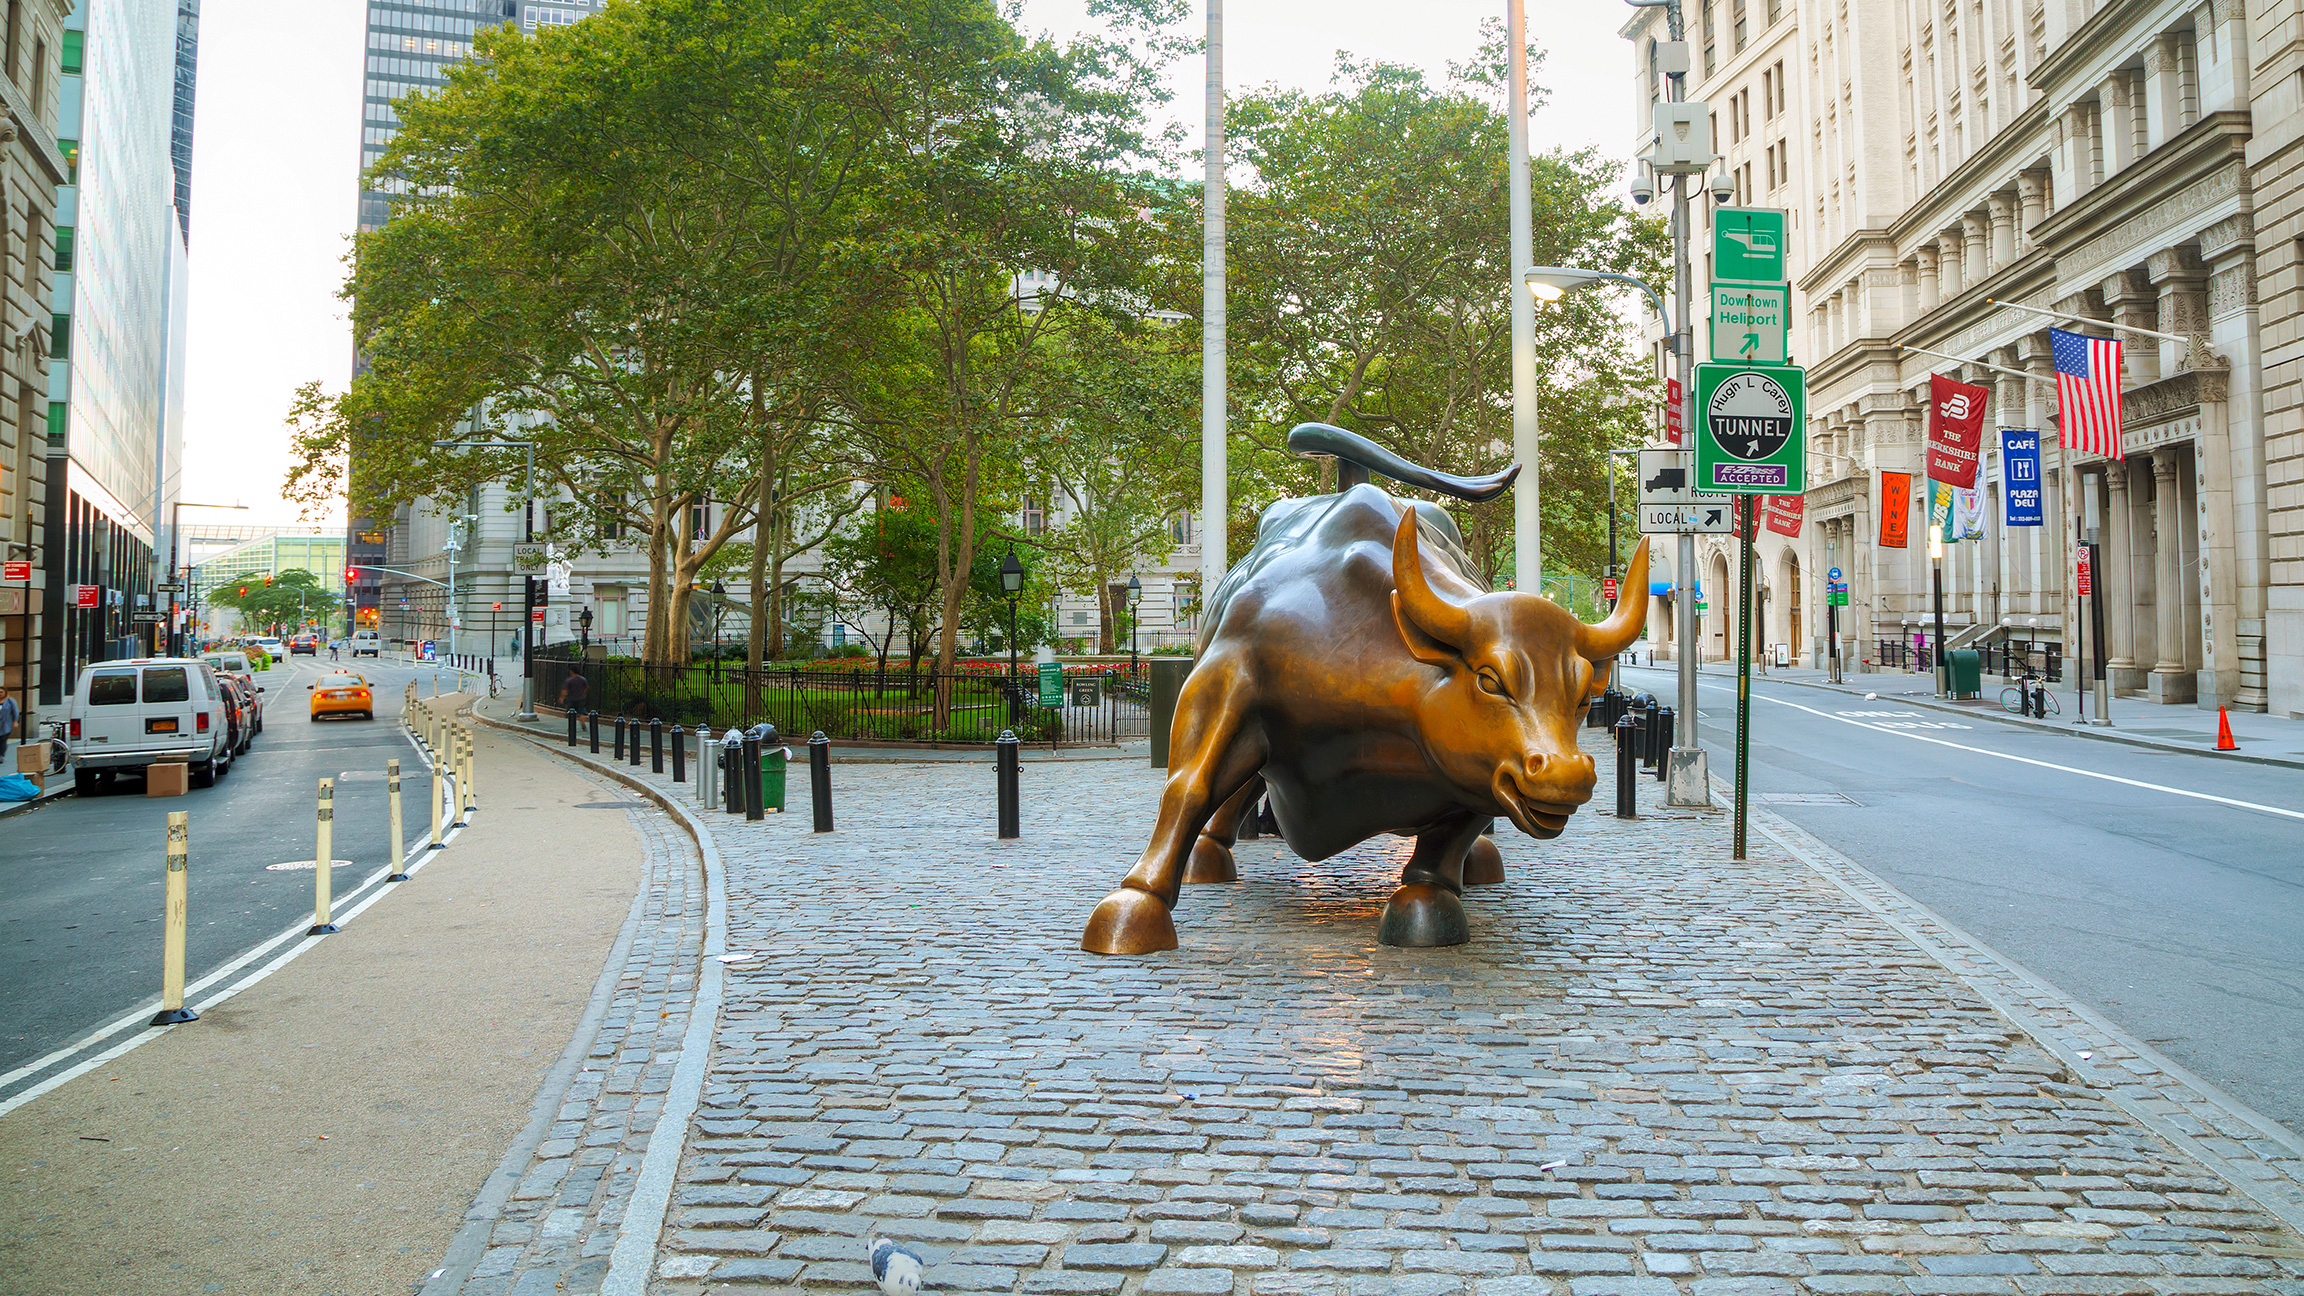 Will rising uncertainty halt the charging bull?